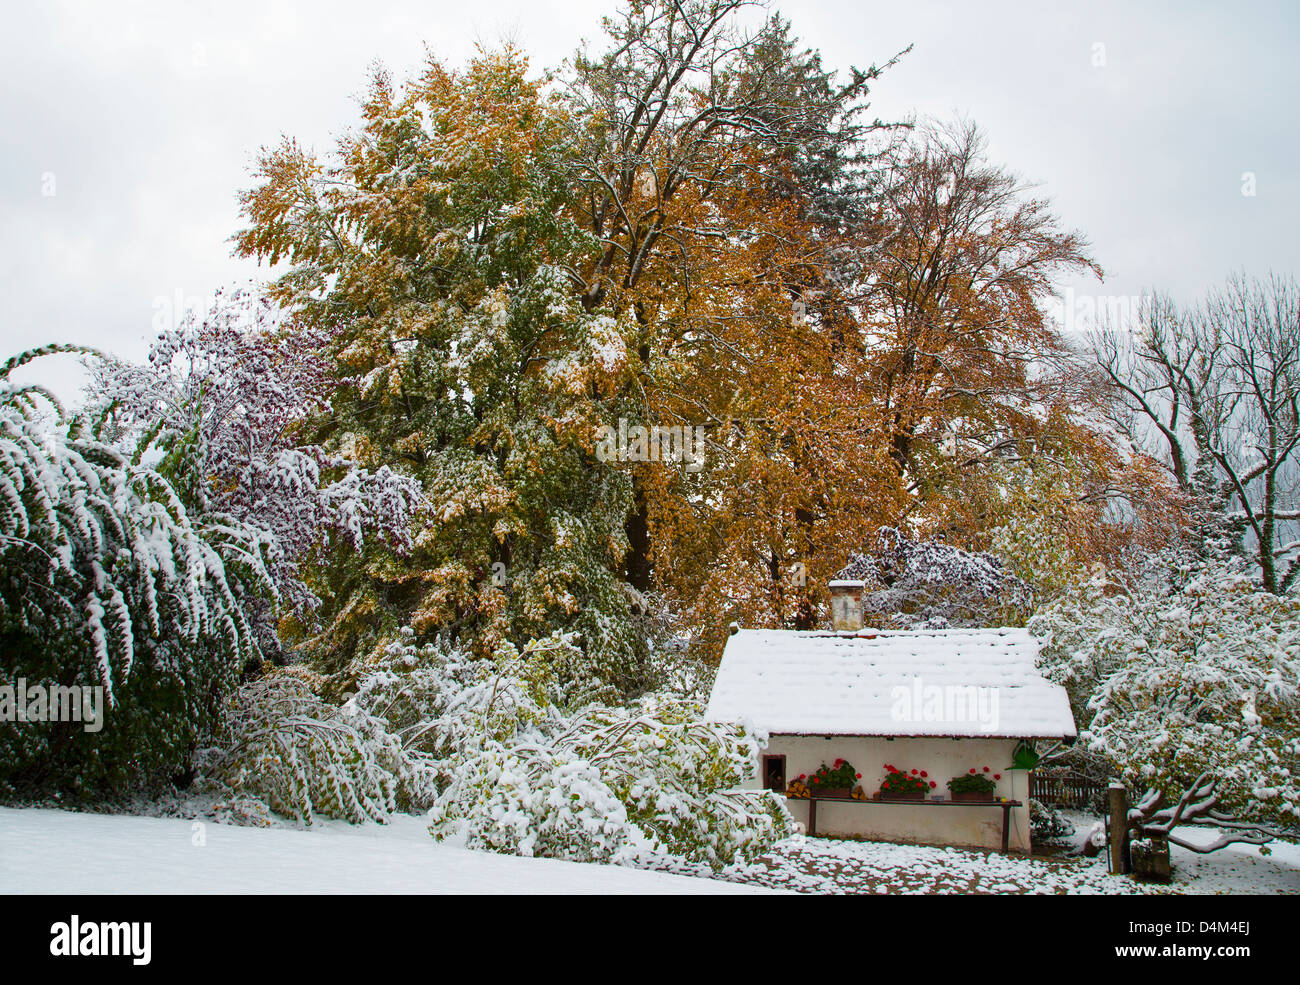 House and trees in snowy landscape - Stock Image